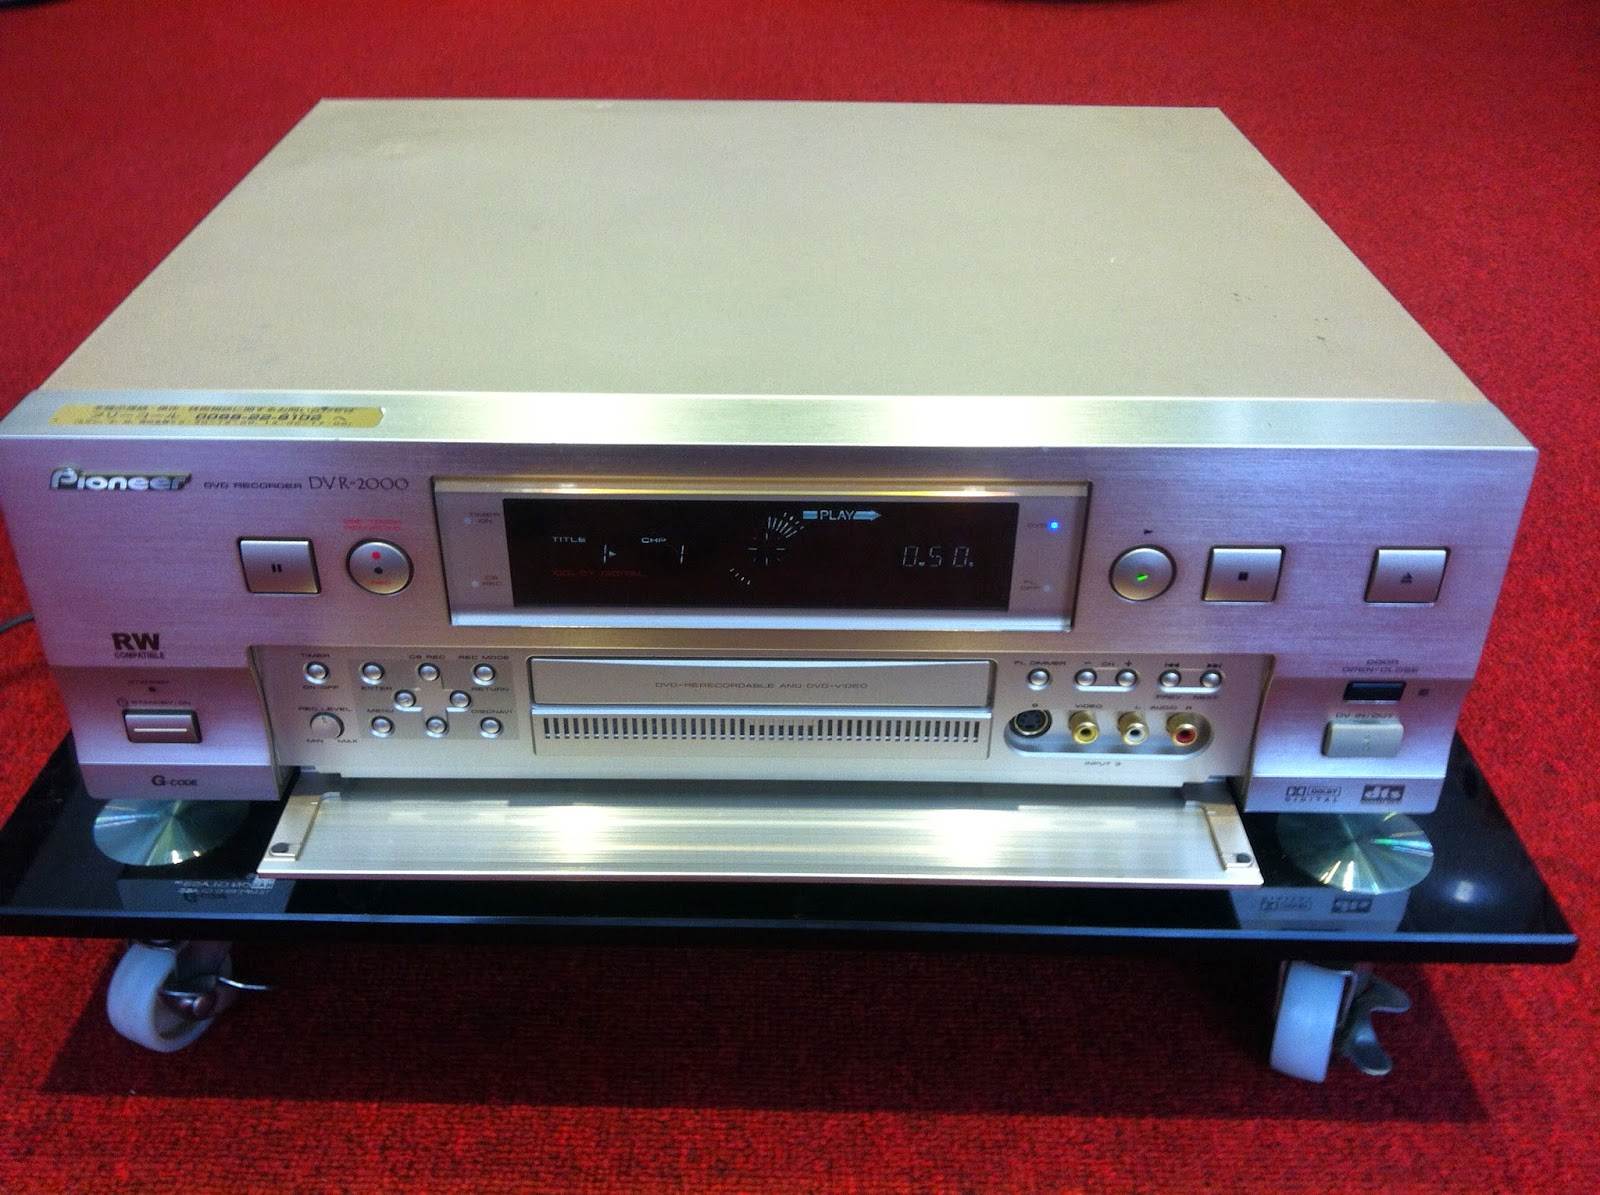 Đầu DVD Recorder - DVR-2000 - Made in Japan